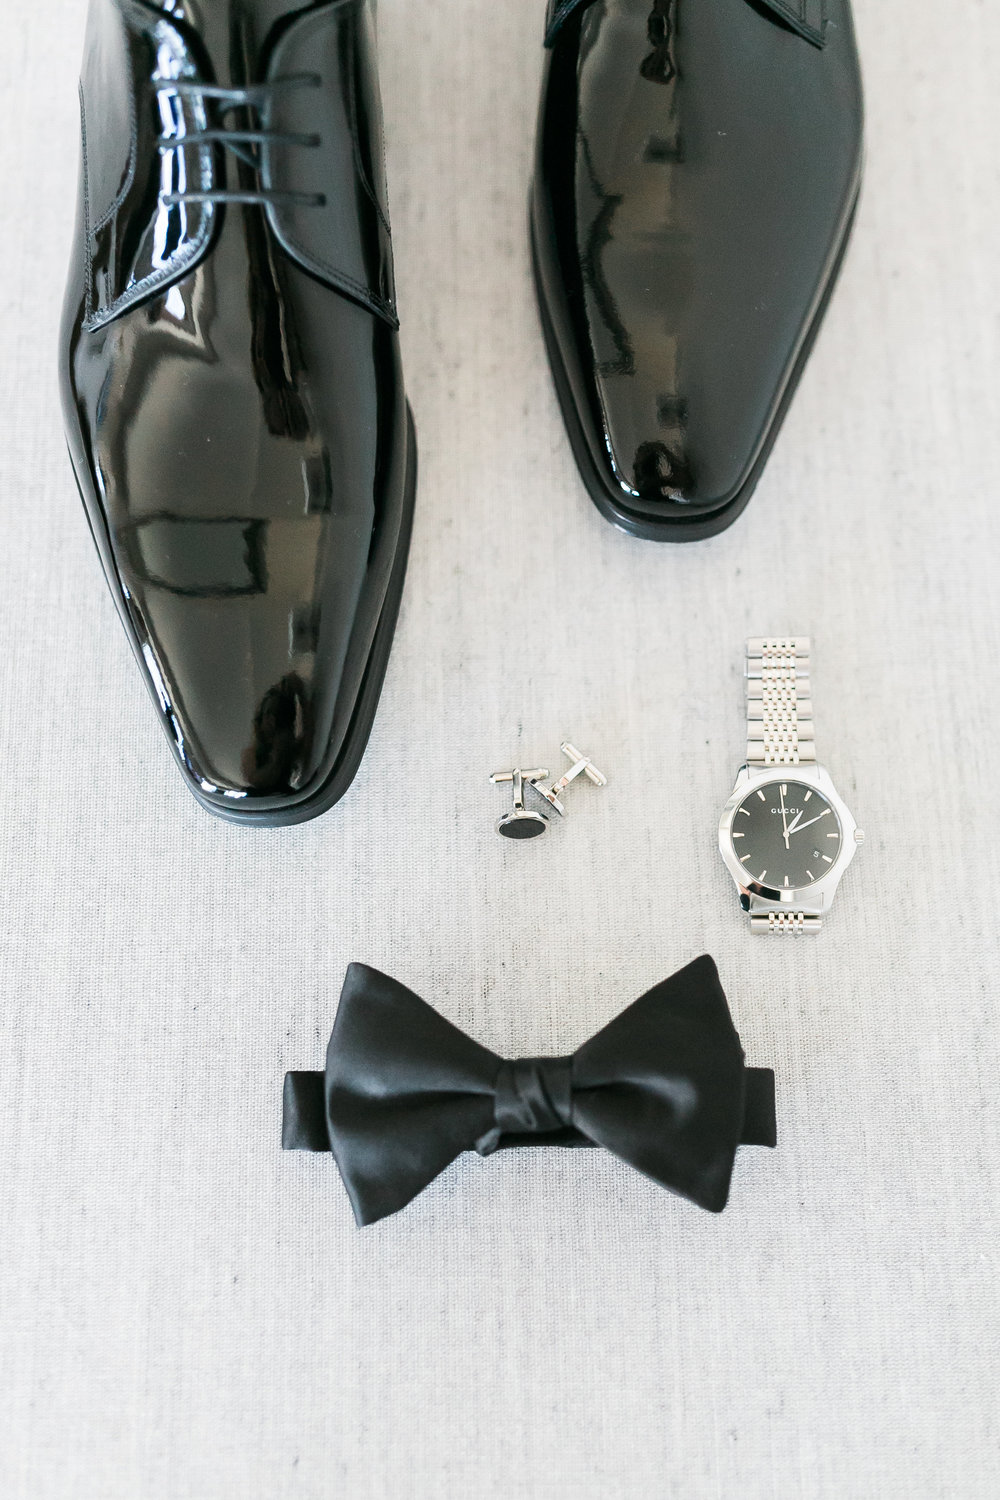 The groom wore shiny black patent leather shoes and a bow tie for a classic black tie look.  Las Vegas Wedding Planner Andrea Eppolito shares this multicultural wedding.  Photo by J.Anne Photography.